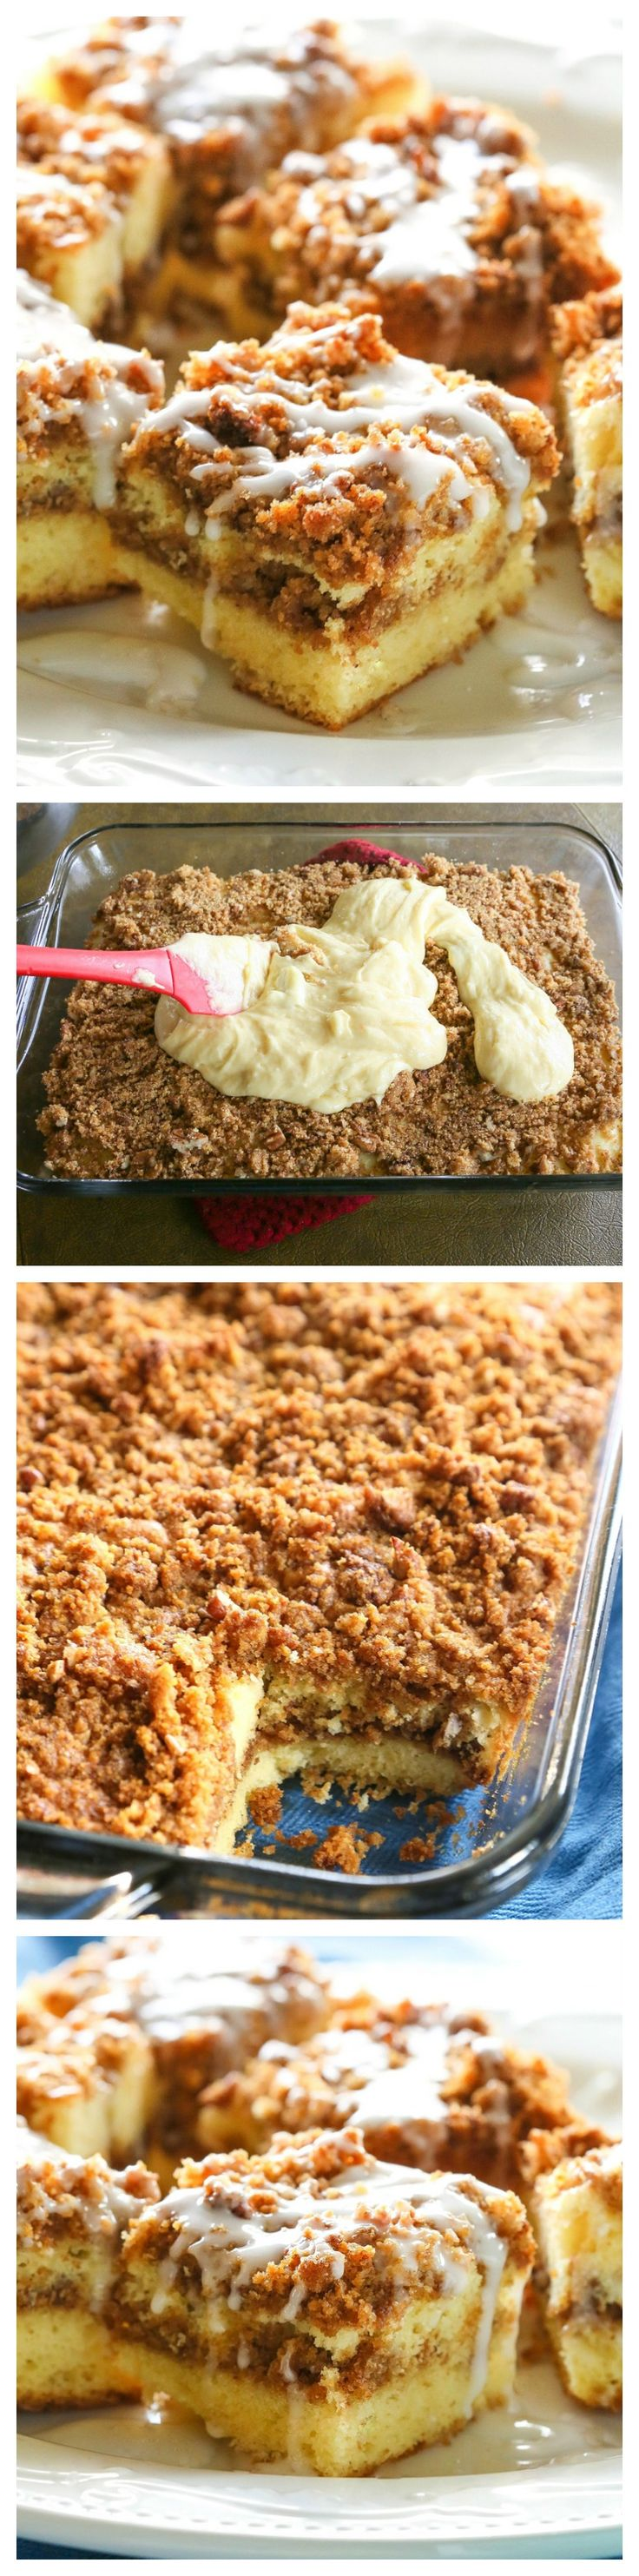 Graham Streusel Coffee Cake - an unbelievably easy coffee cake with lots of brown sugar, graham crackers, and cinnamon. http://the-girl-who-ate-everything.com